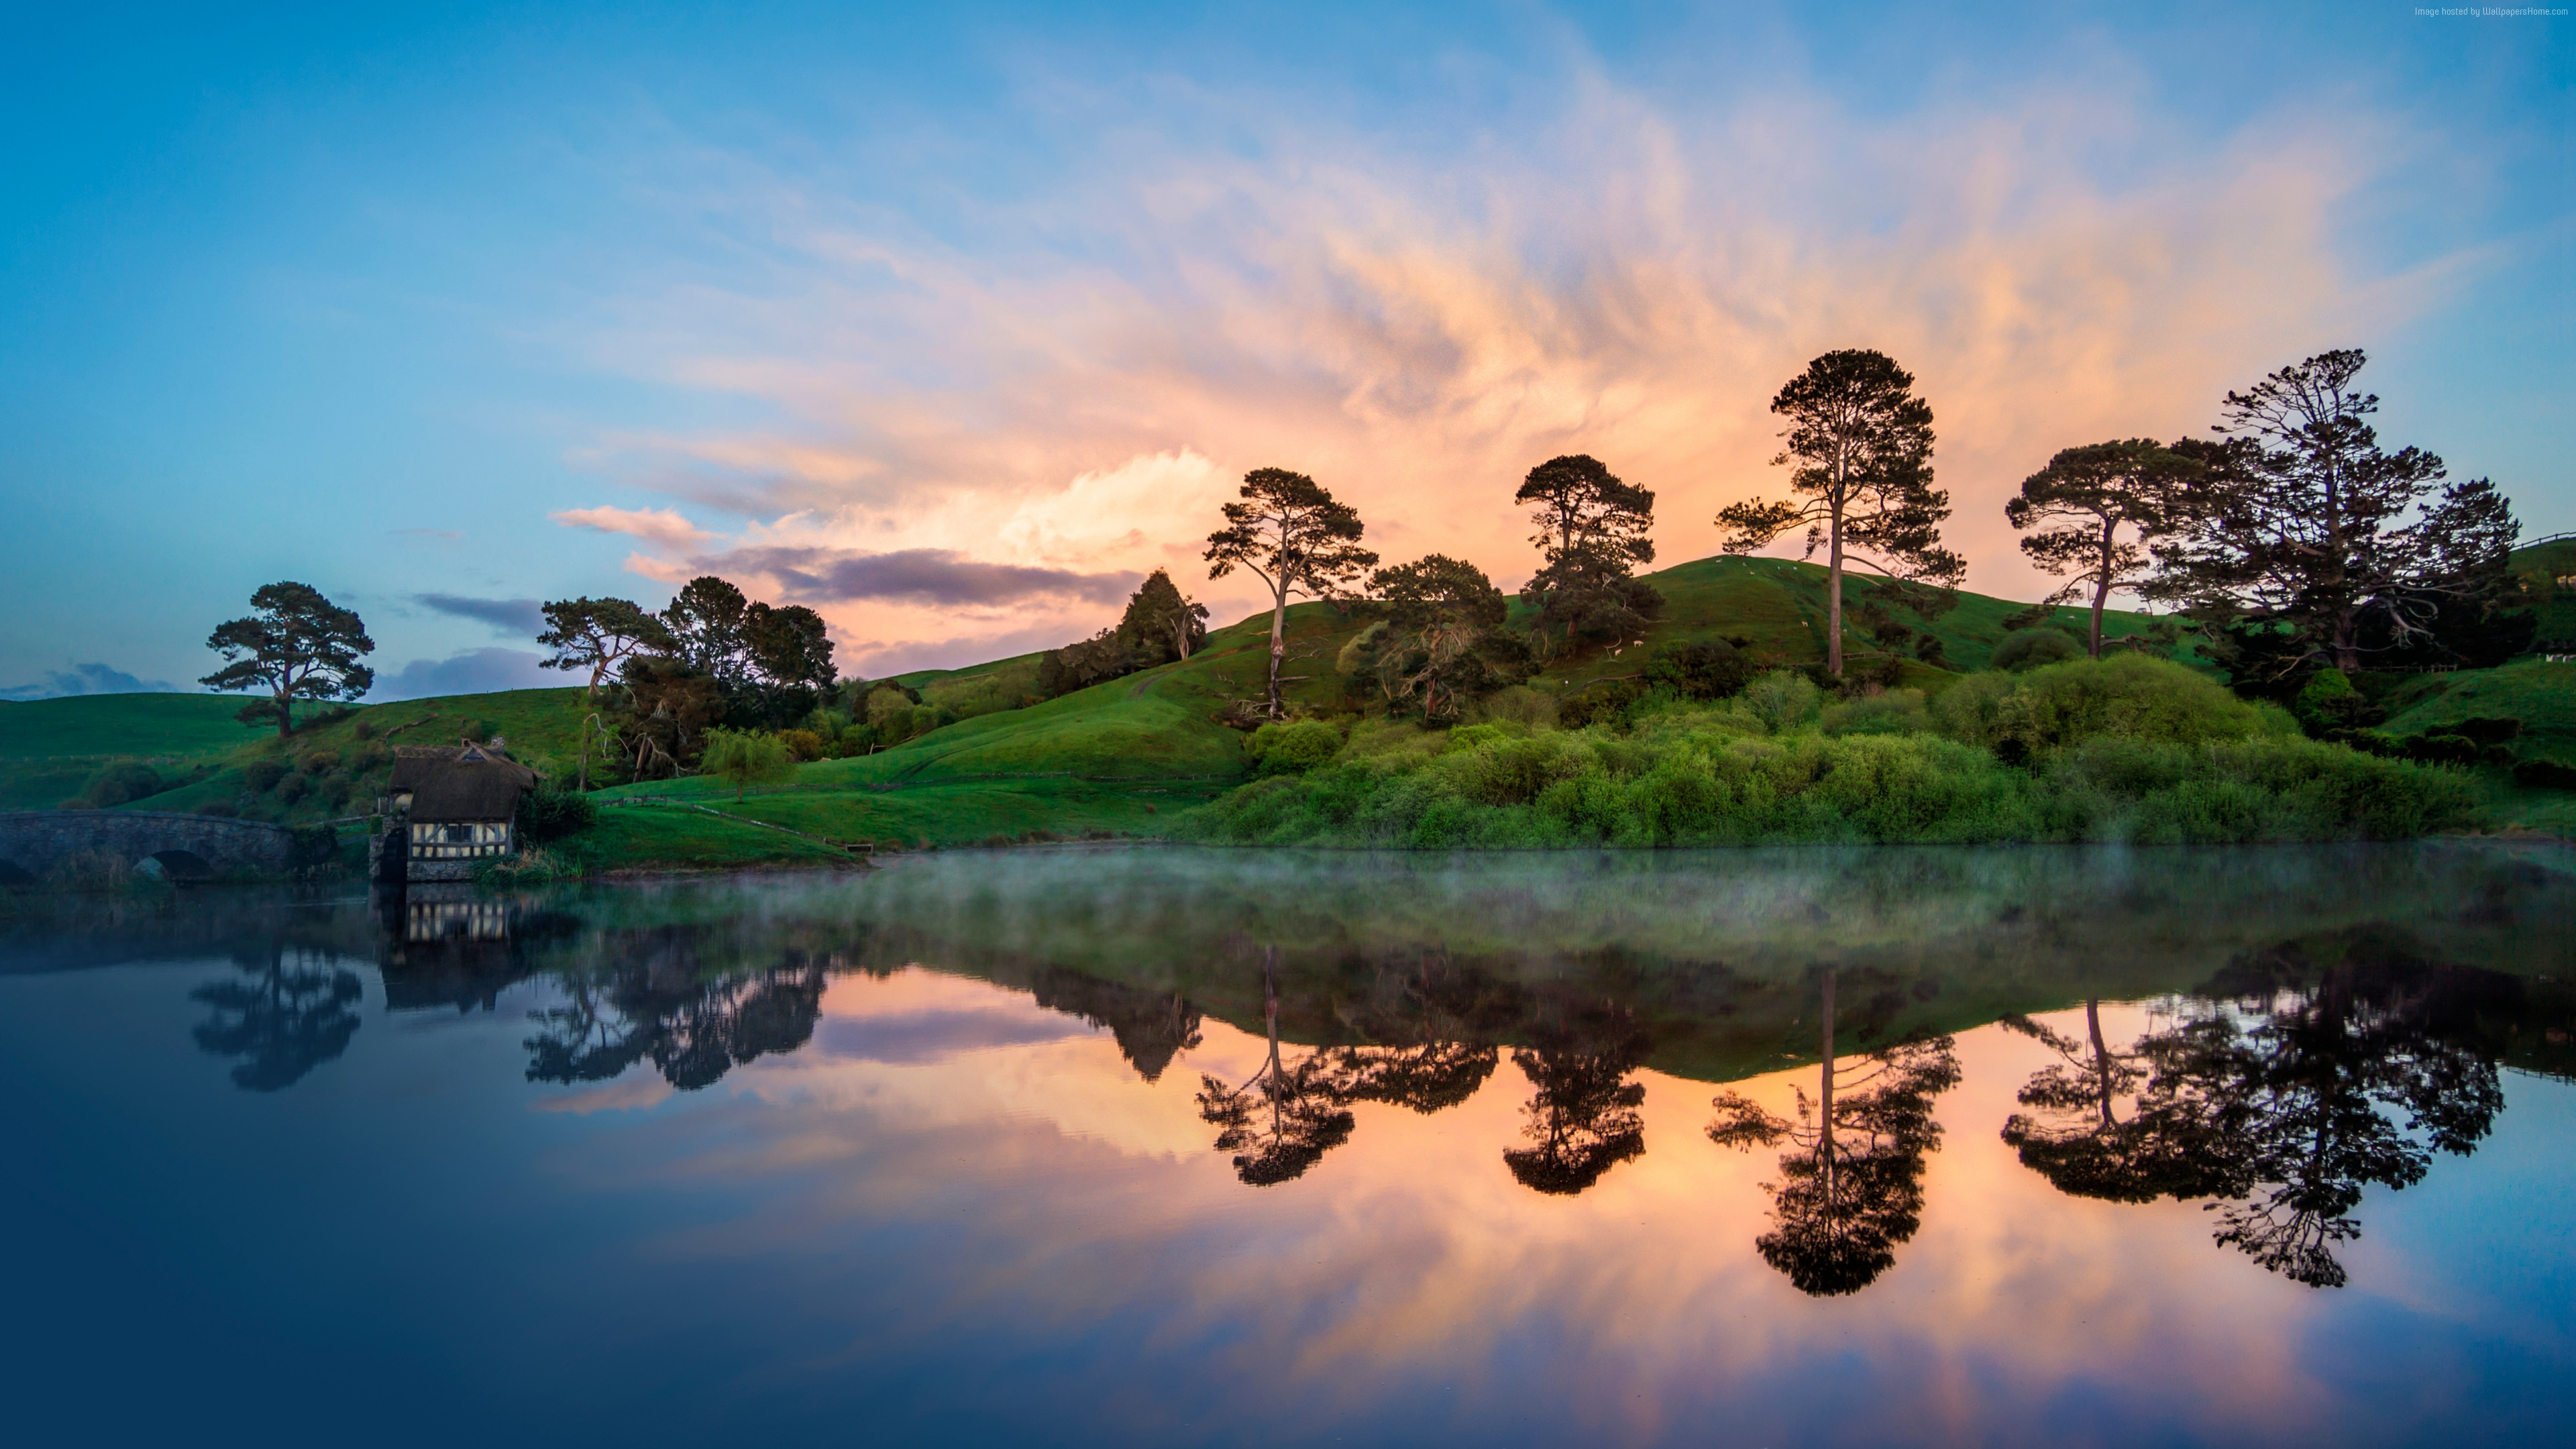 Wallpaper New Zealand, river, trees, 5k, Travel